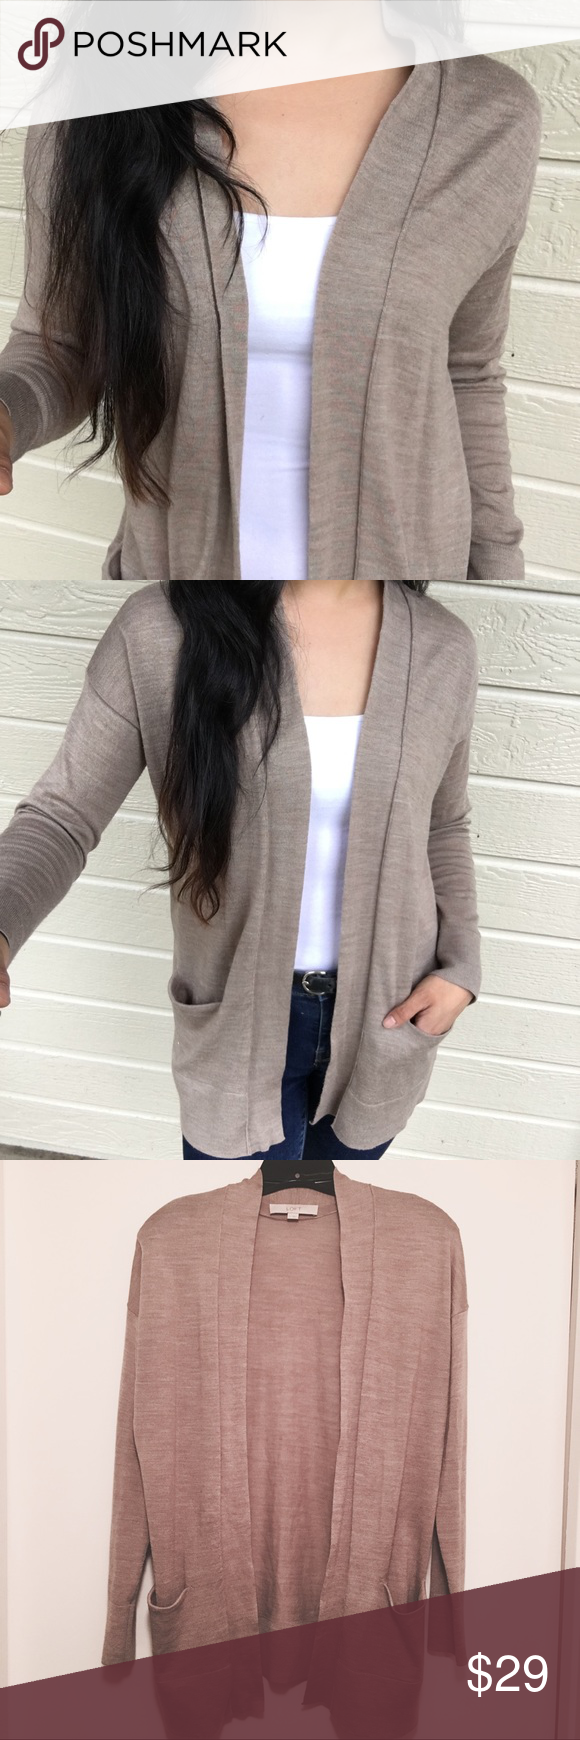 Ann taylor loft light brown long sleeve cardigan